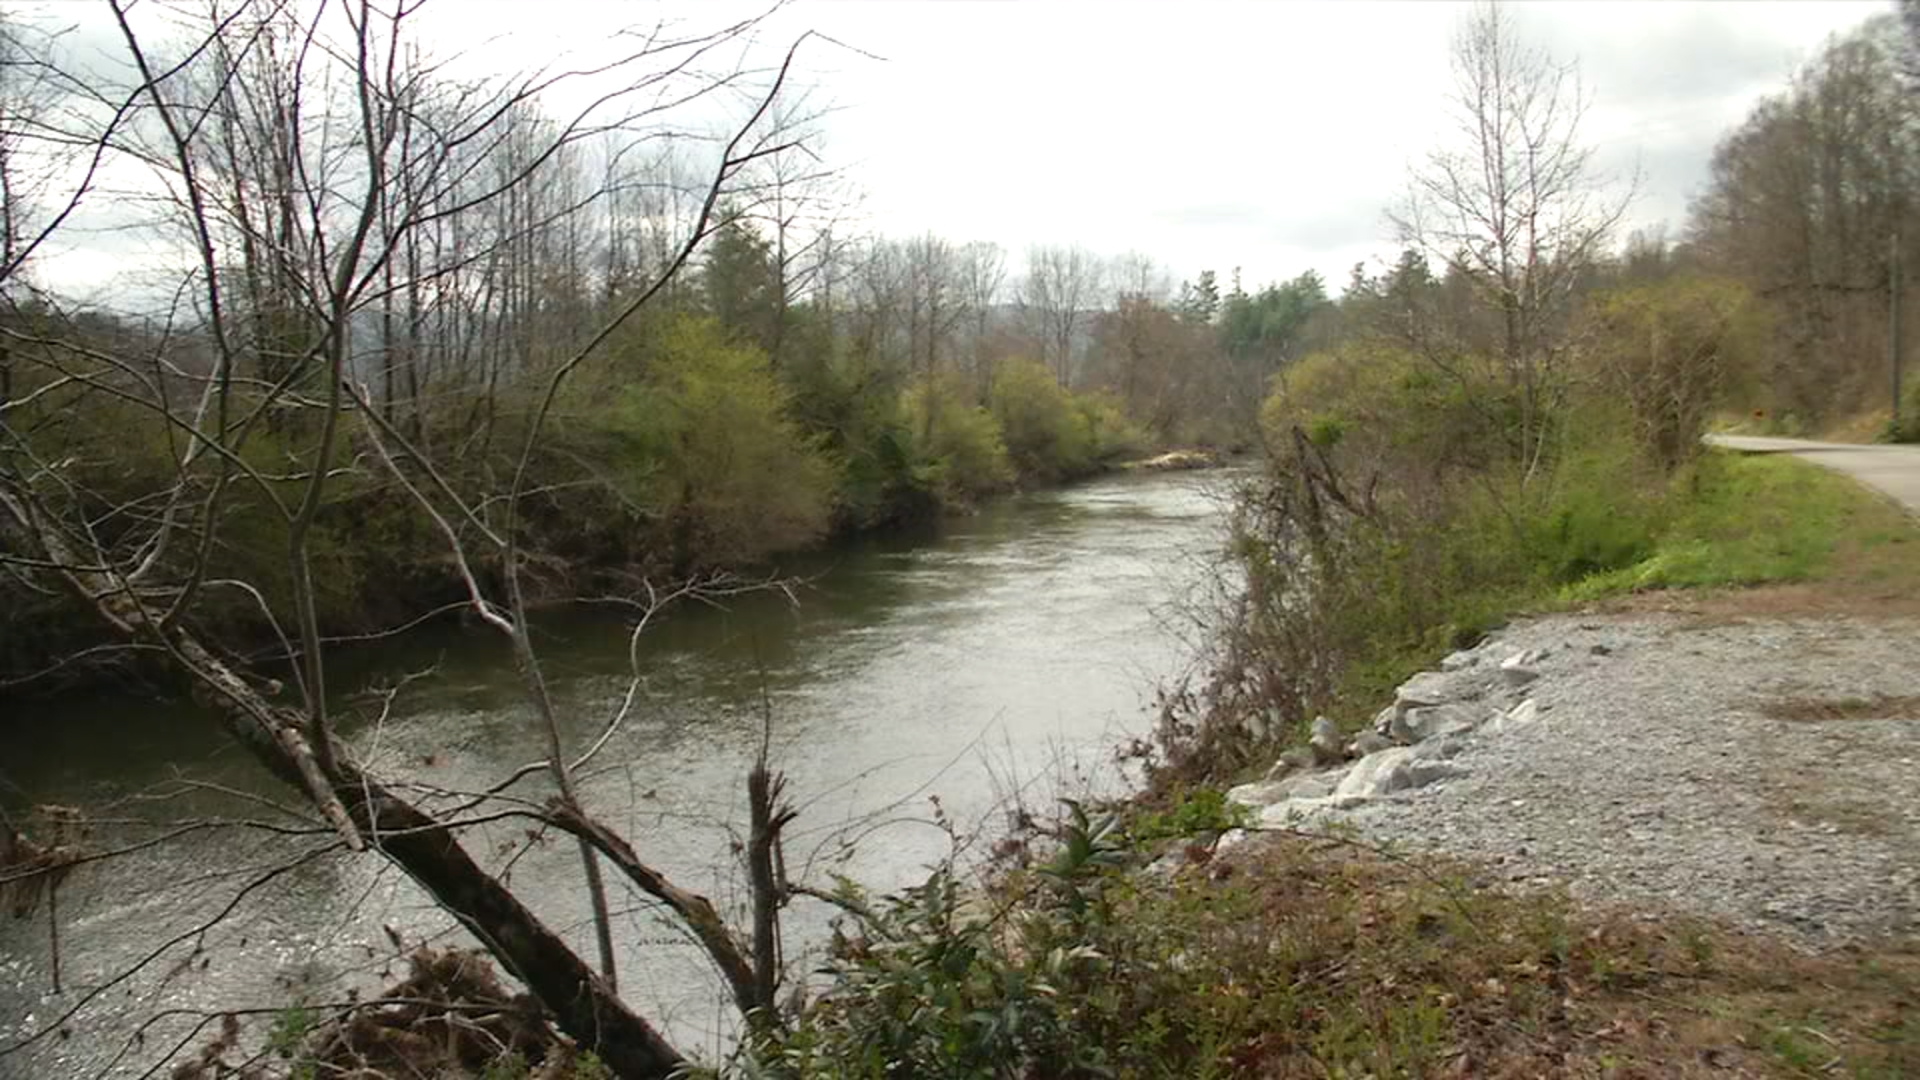 DEQ says SSO's, since October 2015, have not impacted water quality in the French Broad River. (Photo credit: WLOS)